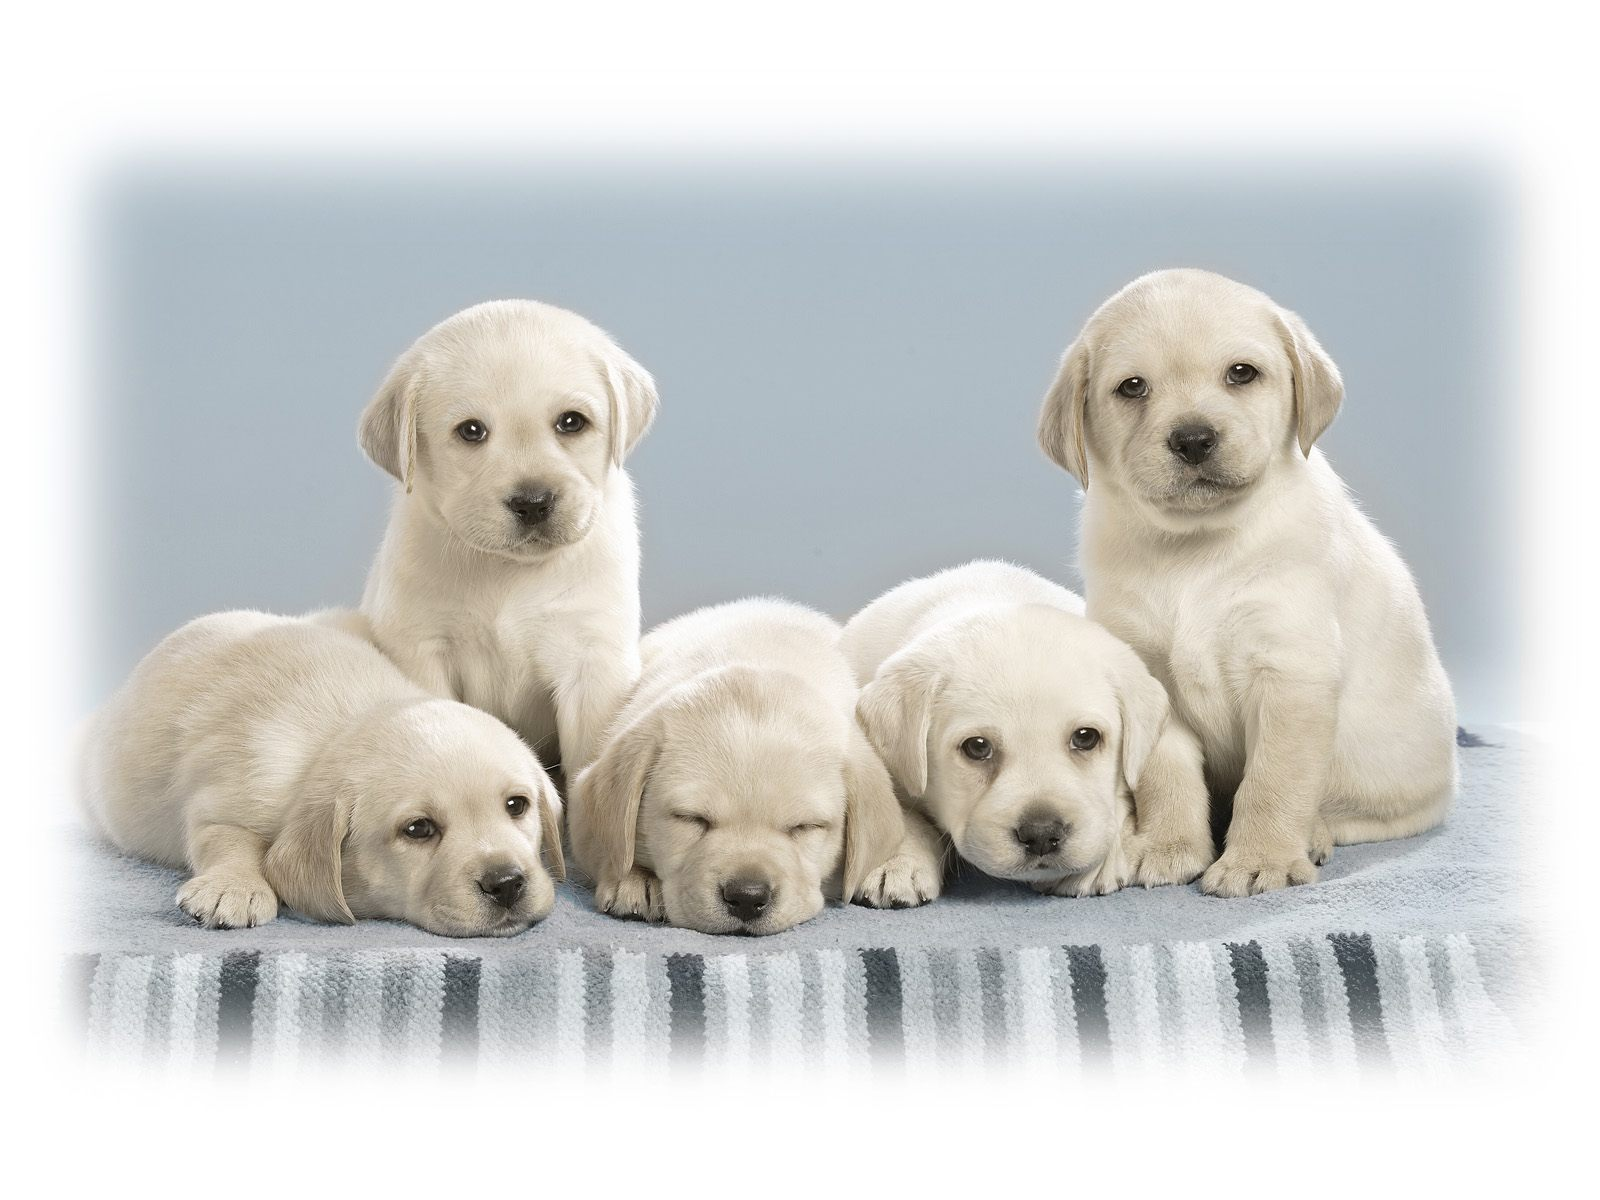 Cute Puppies Wallpapers HD Wallpapers 1600x1200